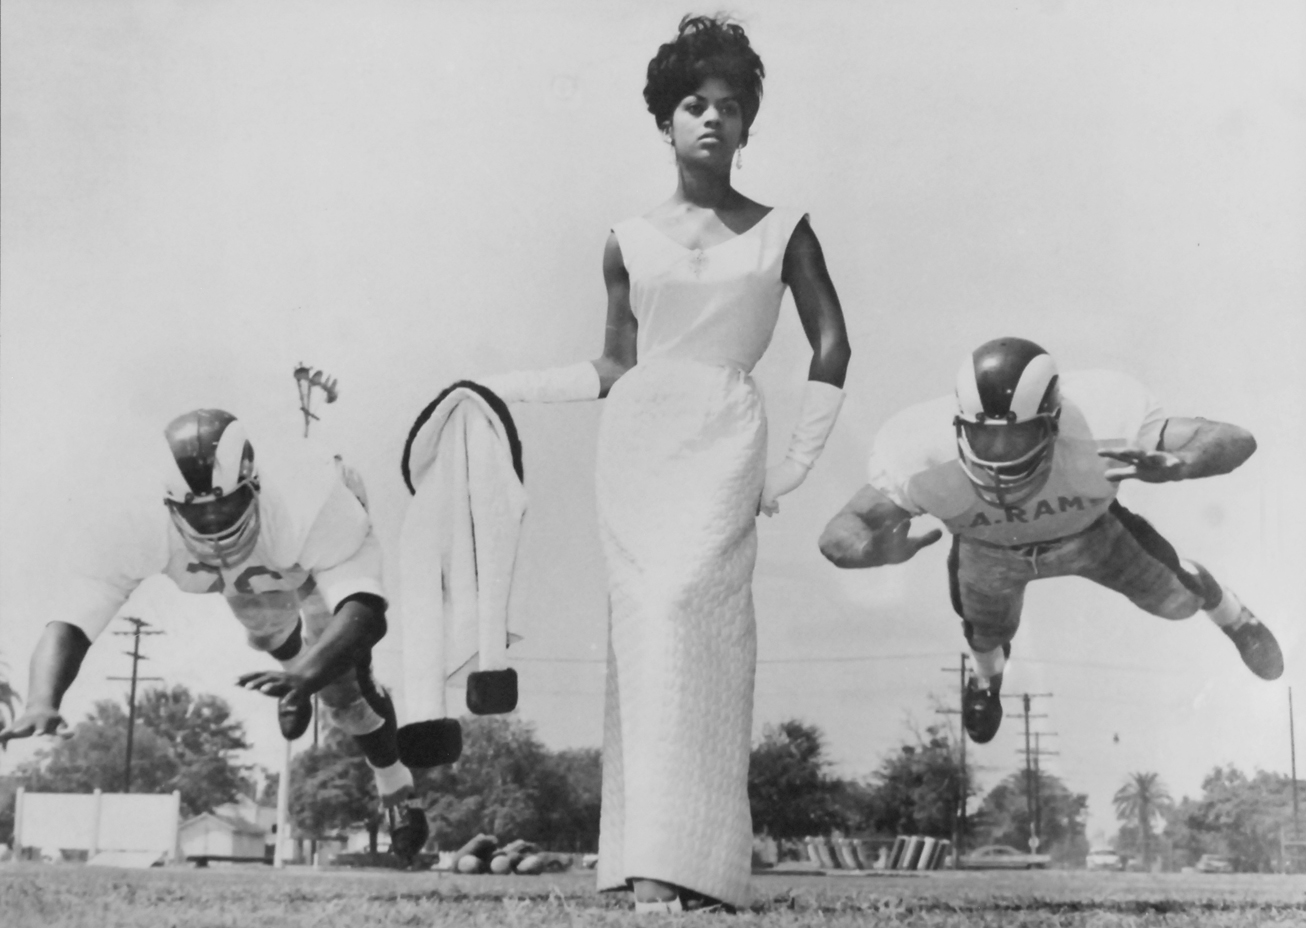 Cynthia Akins and Los Angeles Rams, c. 1965 by LaMonte McLemore.  Photo courtesy of Irene Fertik1